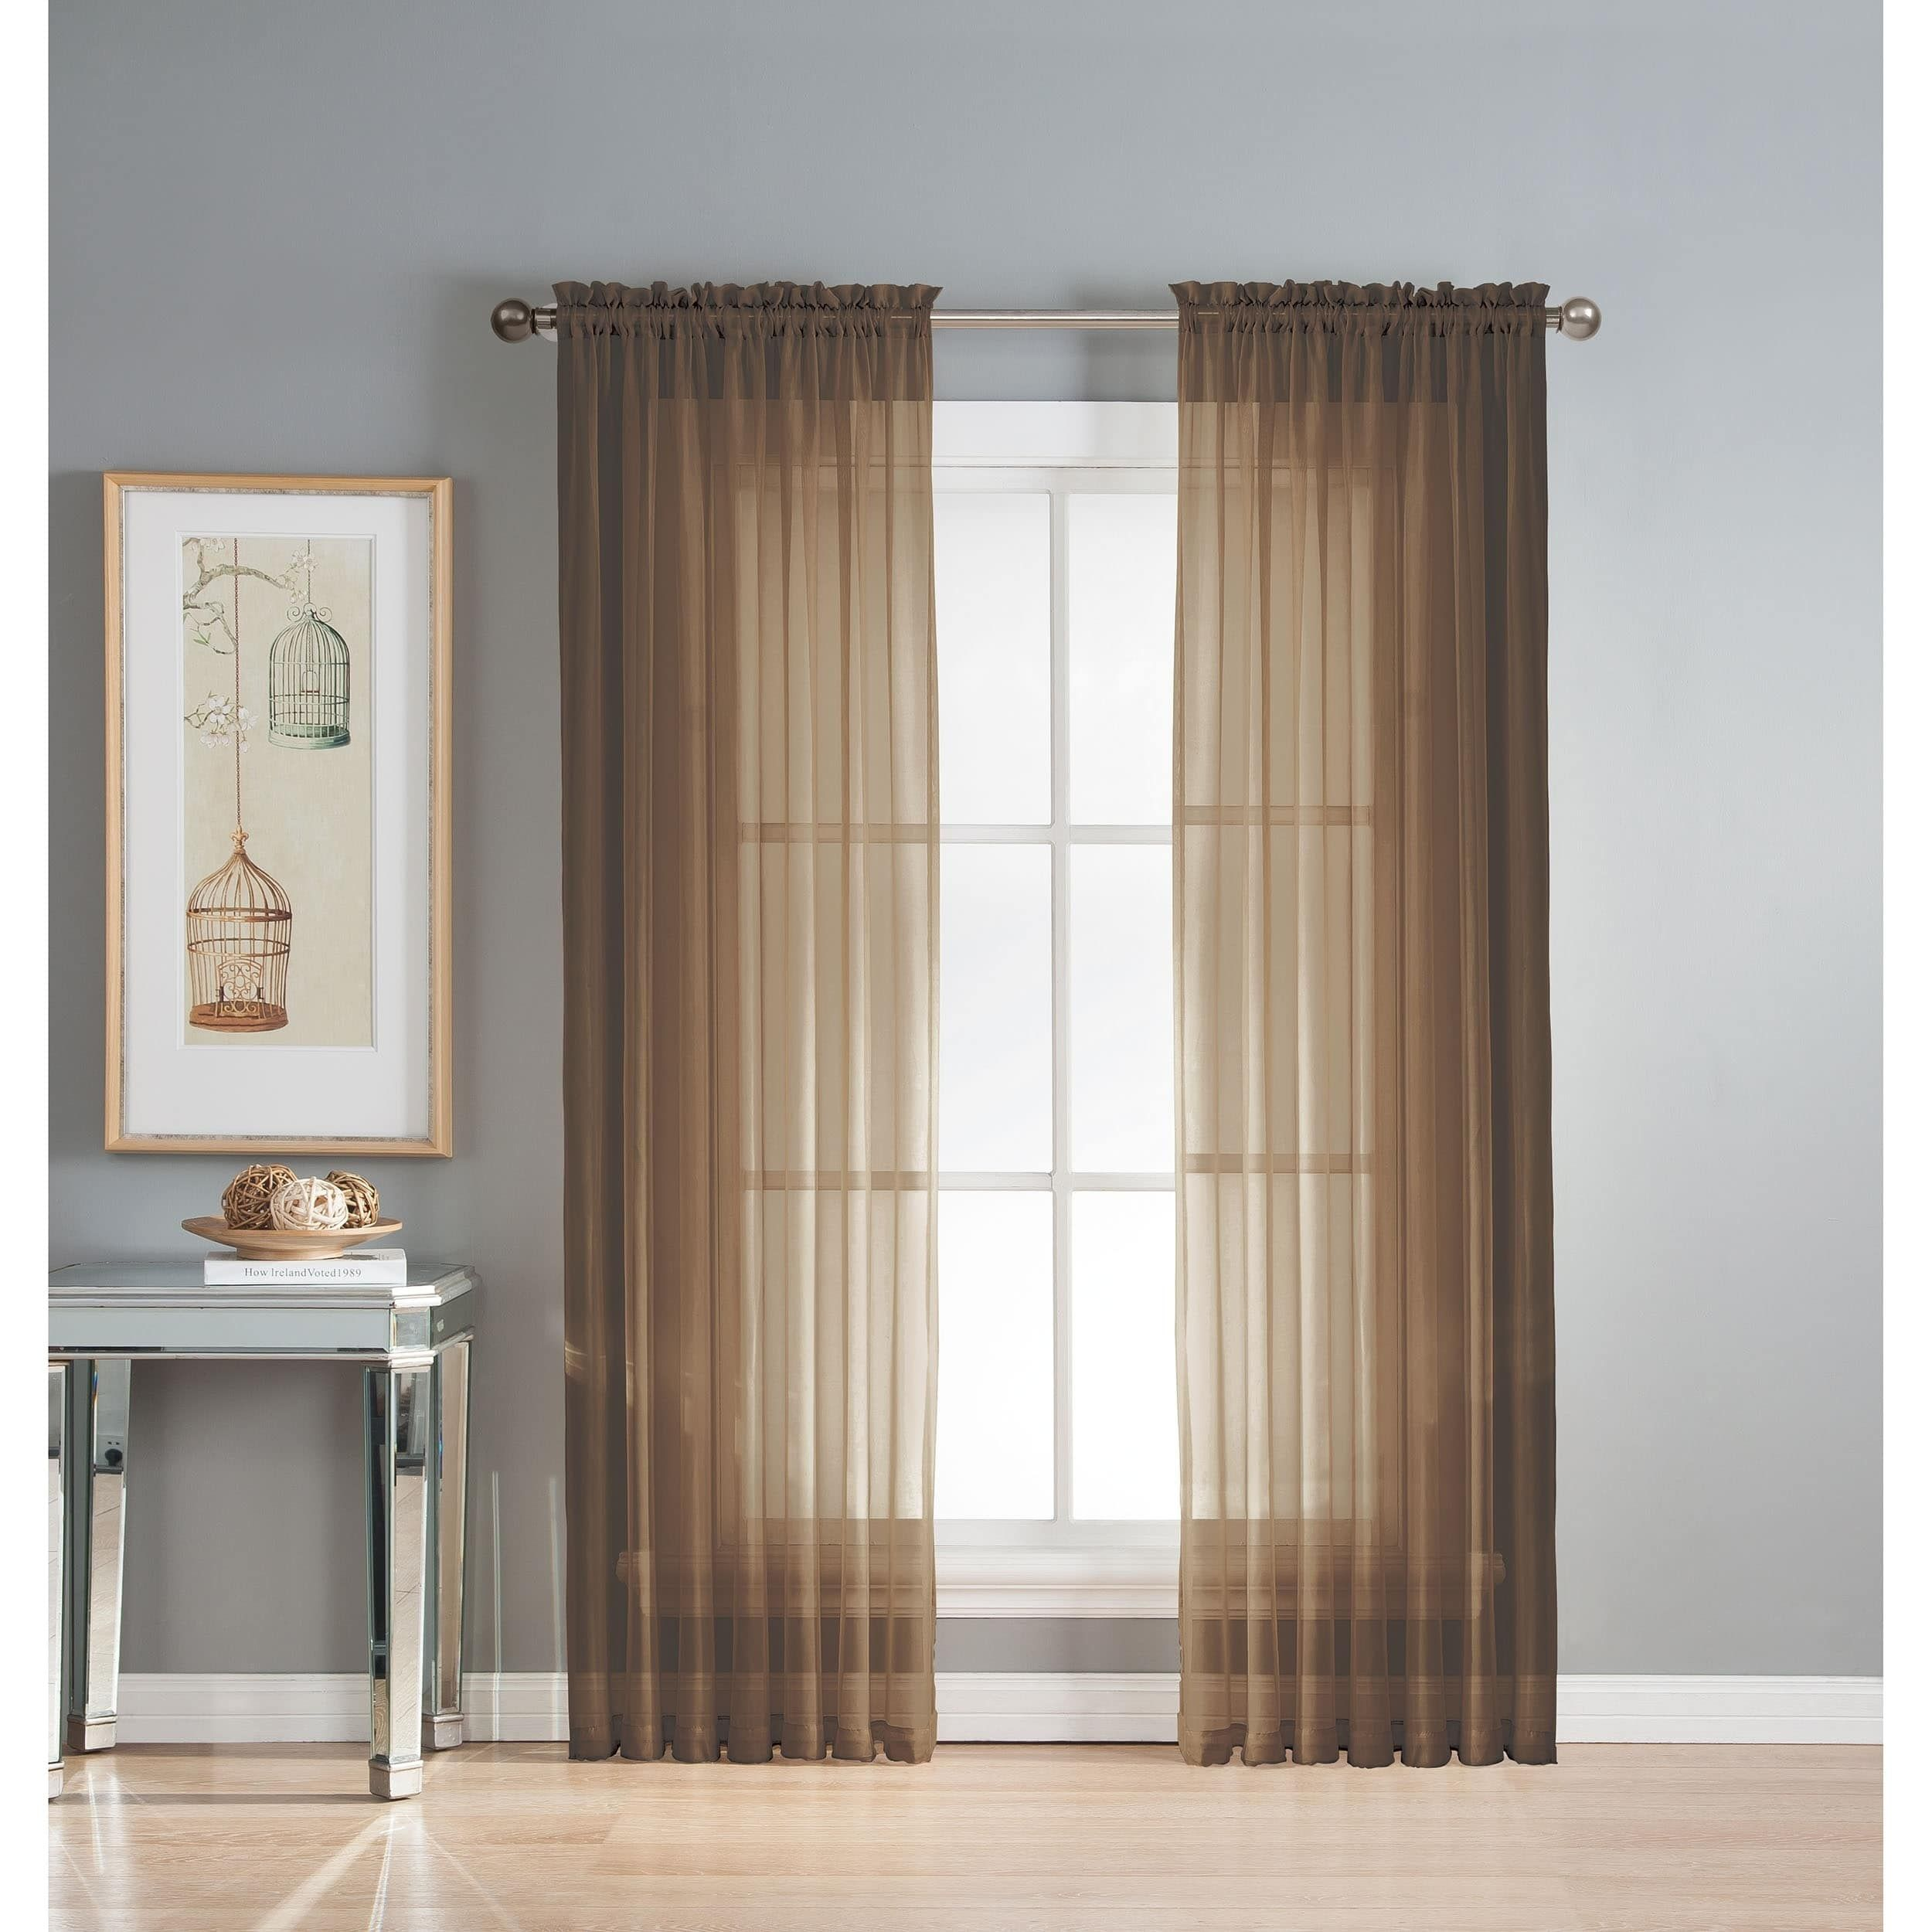 Window Elements Diamond Sheer Voile 56 X 95 In Rod